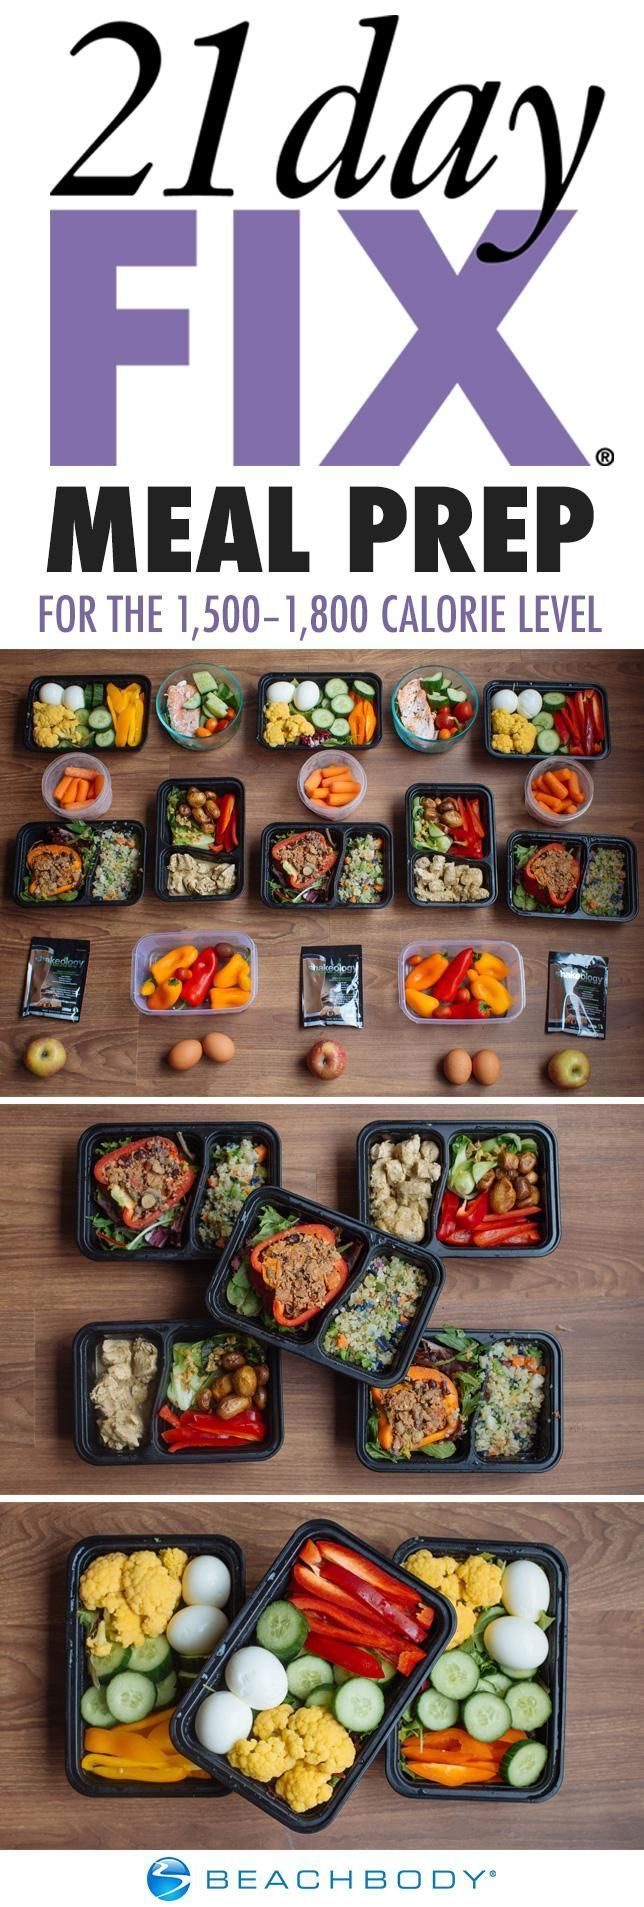 "If you've fallen into a meal prep rut, it's time to try something new! Click through for a full 21 Day Fix meal prep menu, complete with tasty recipes, a grocery list, and preparation instructions. // Beachbody // <a href=""http://www.beachbody.com/beachbodyblog"" rel=""nofollow"" target=""_blank"">BeachbodyBlog.com</a> // 21 Day Fix Approved // nutrition // clean eating // fitfood http://www.beachbody.com/beachbodyblog/nutrition/meal-prep-21-day-fix-1500-1800-calories?code=SOCIAL_BLOG_PI&utm_co"